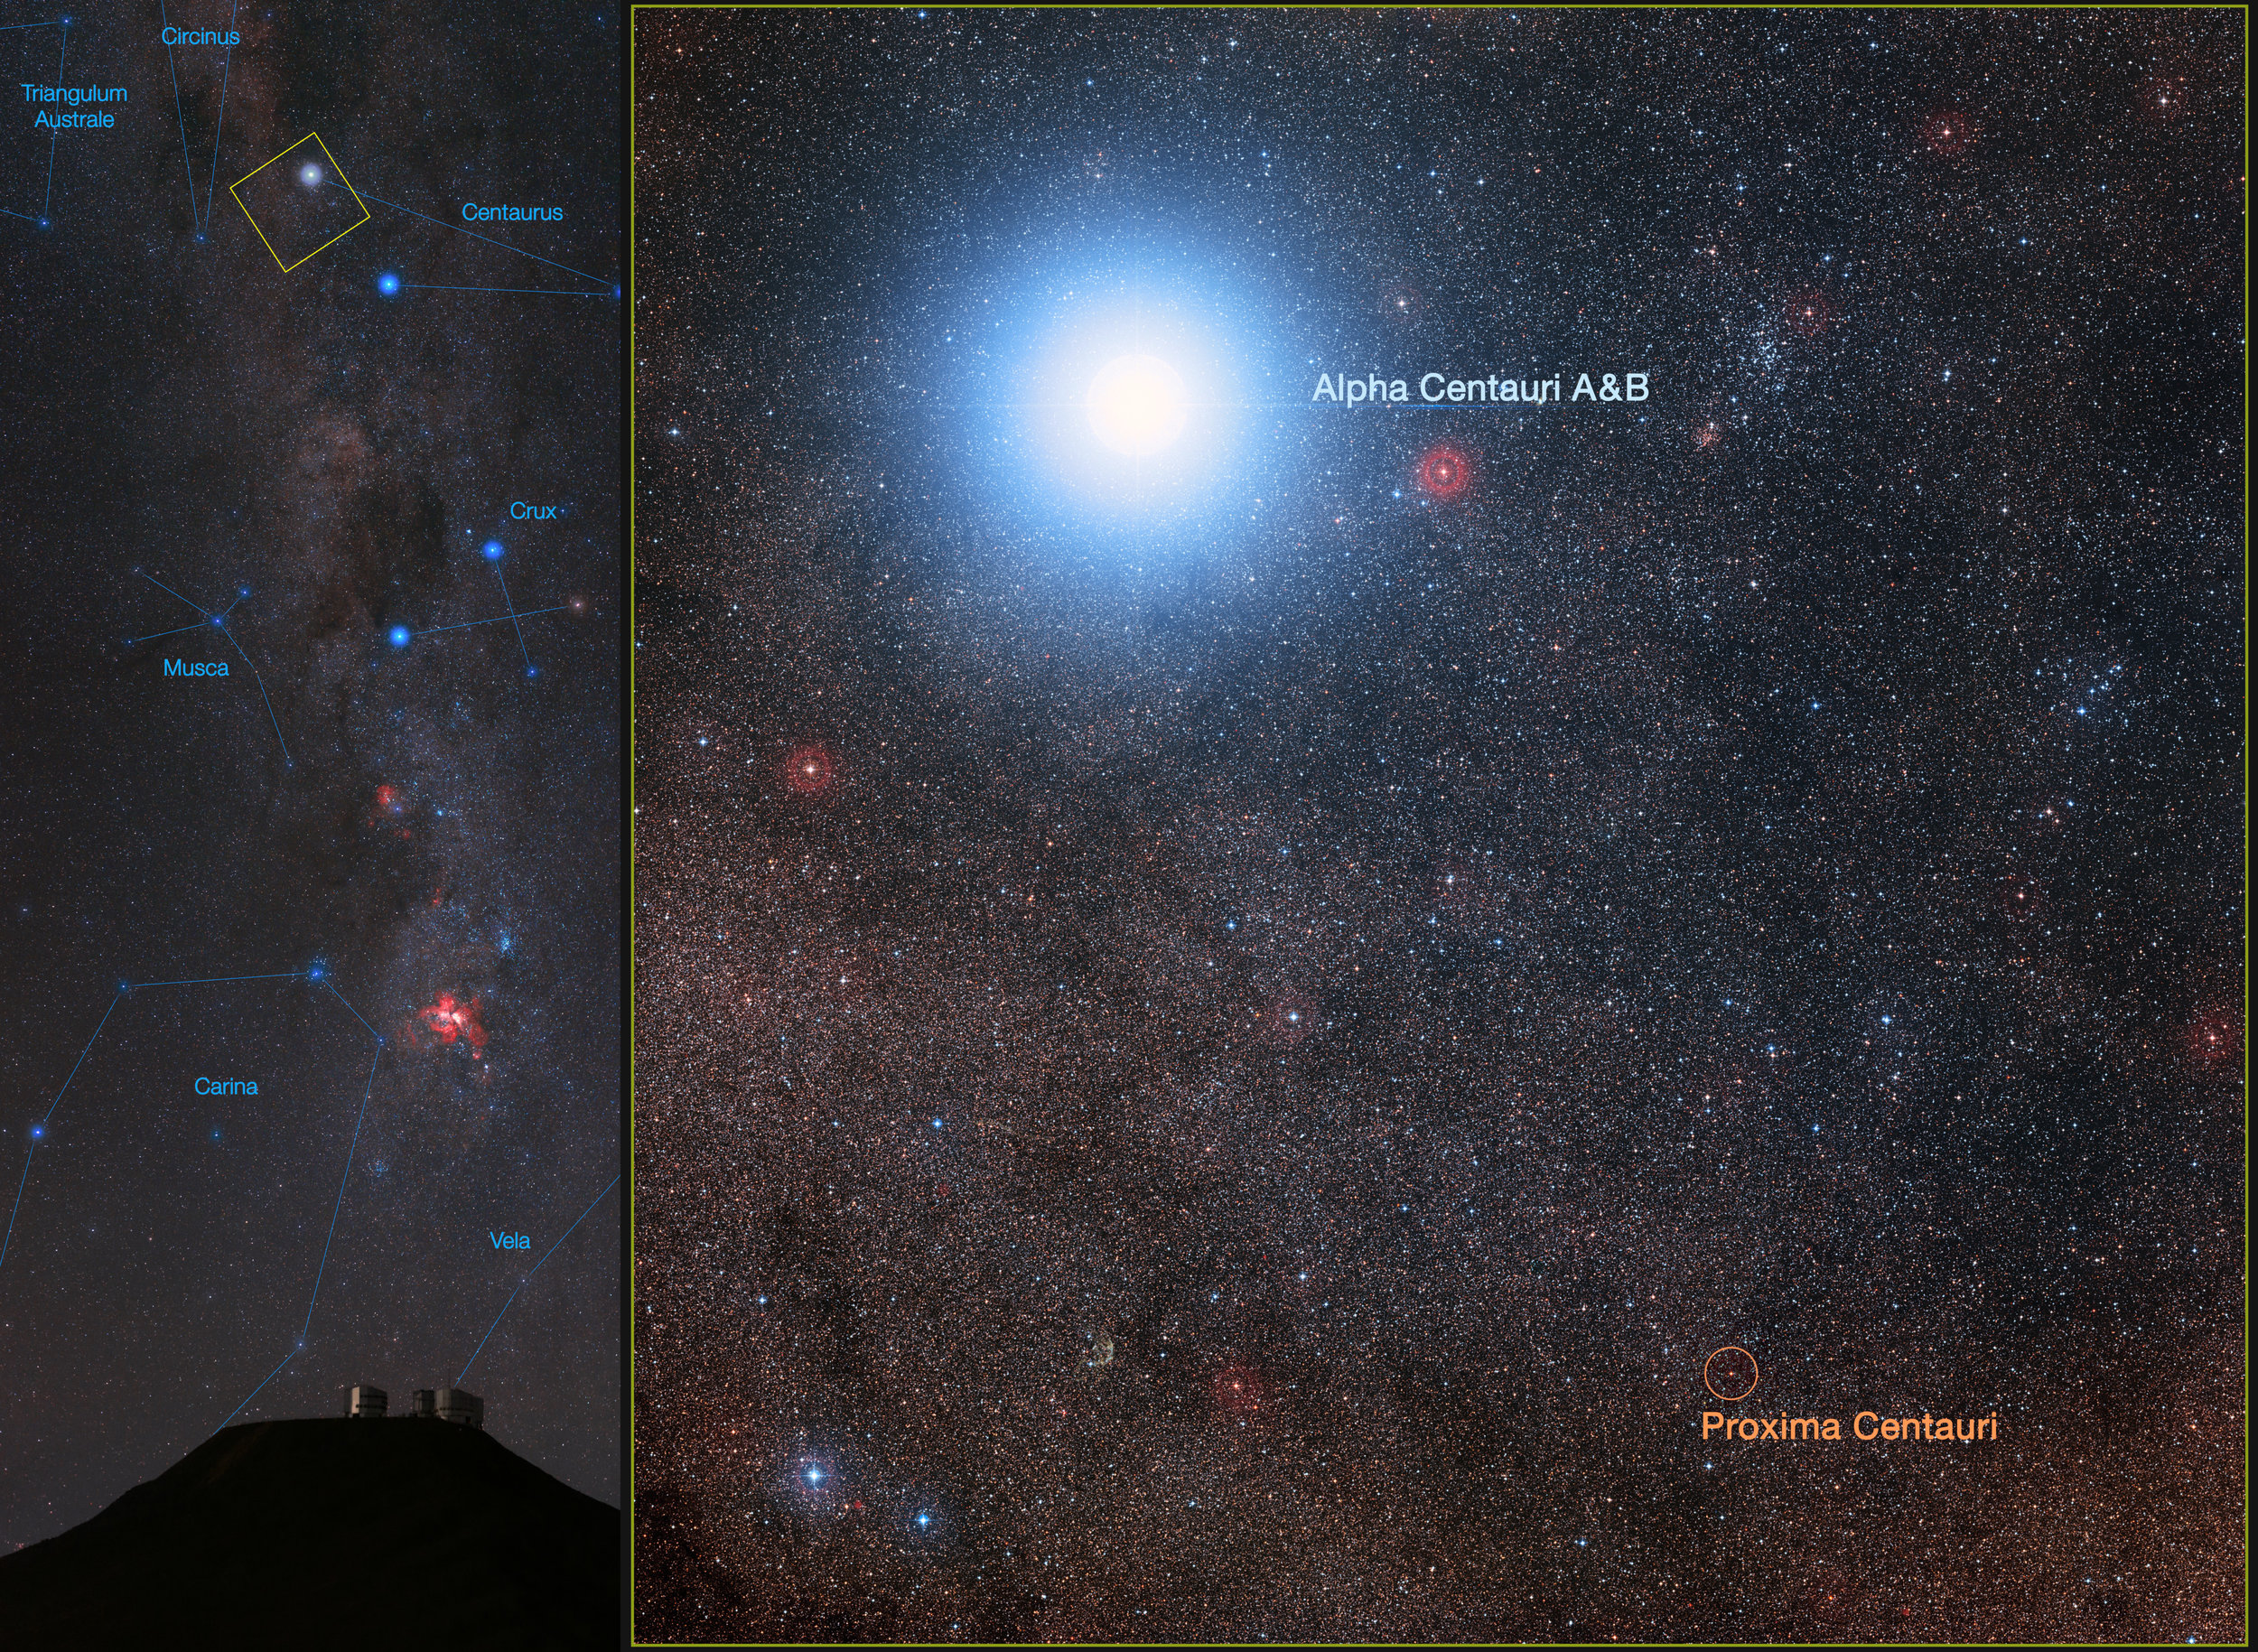 This image shows the closest stellar system to the Sun, the bright double star Alpha Centauri AB and its distant and faint companion Proxima Centauri. In late 2016 ESO signed an agreement with the Breakthrough Initiatives to adapt the VLT instrumentation to conduct a search for planets in the Alpha Centauri system. Such planets could be the targets for an eventual launch of miniature space probes by the Breakthrough Starshot Initiative. Image Credit: ESO/B. Tafreshi (twanight.org)/Digitized Sky Survey 2 Acknowledgement: Davide De Martin/Mahdi Zamani